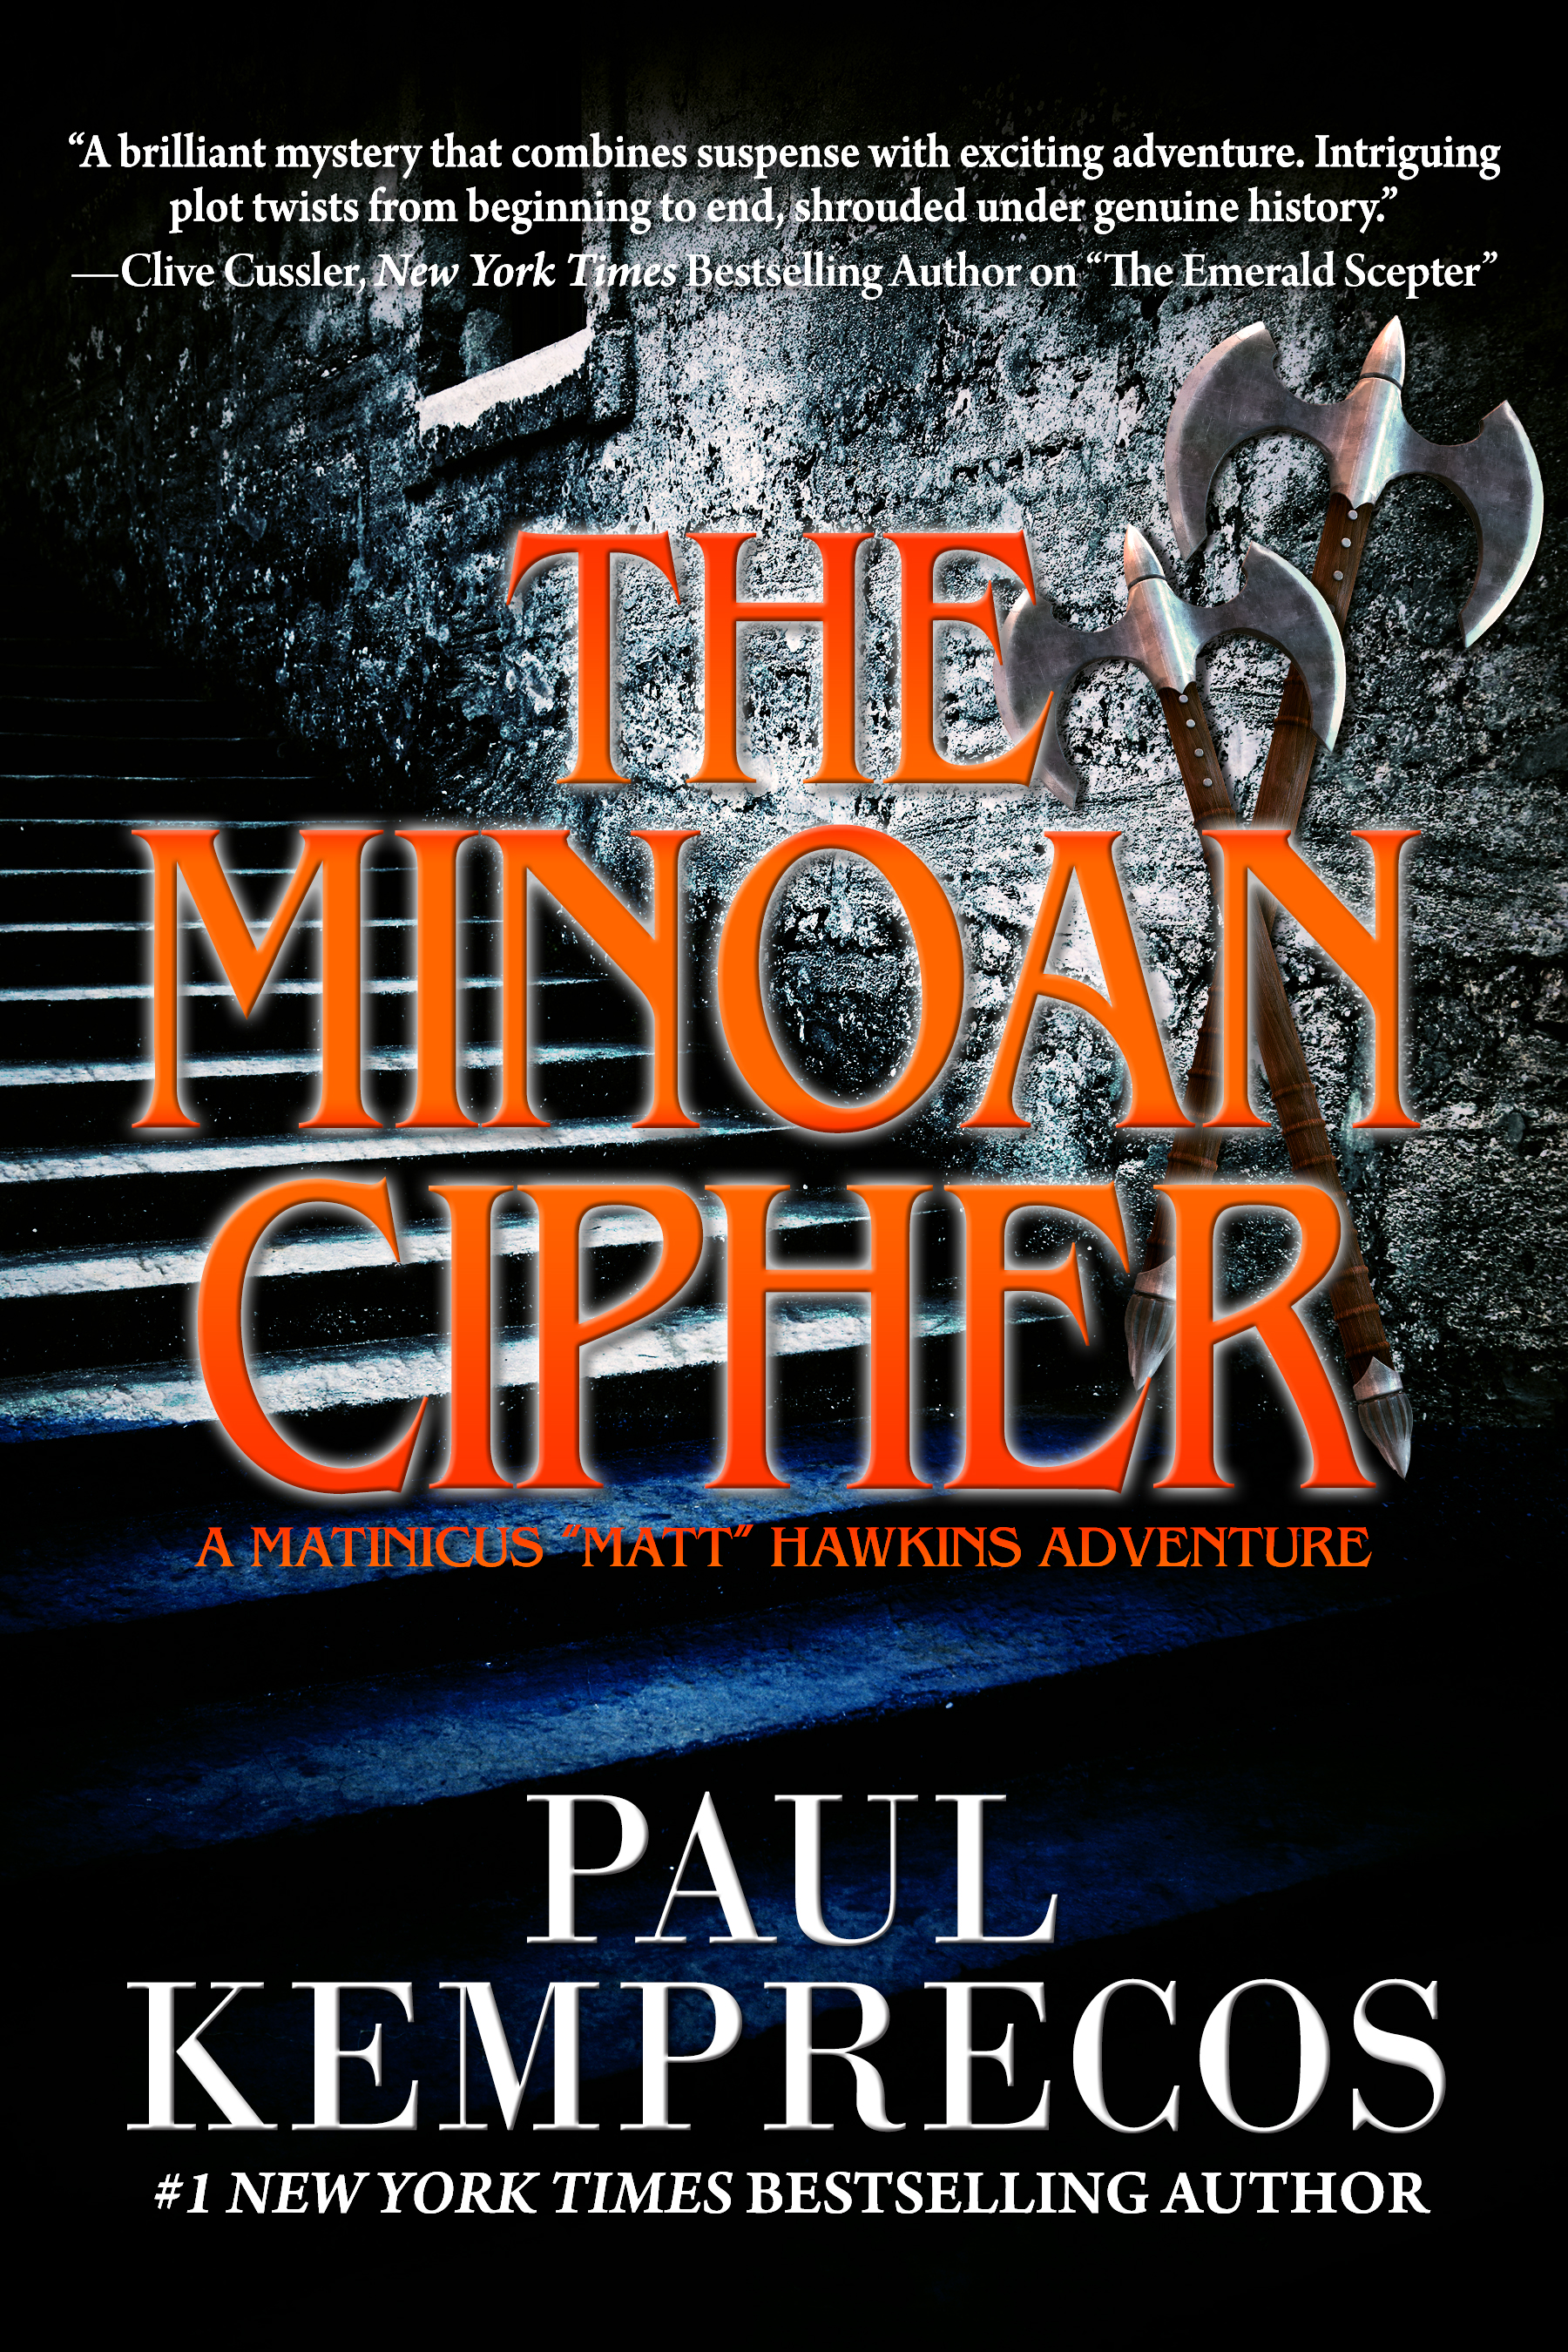 The Minoan Cipher Cover 2016.08.01